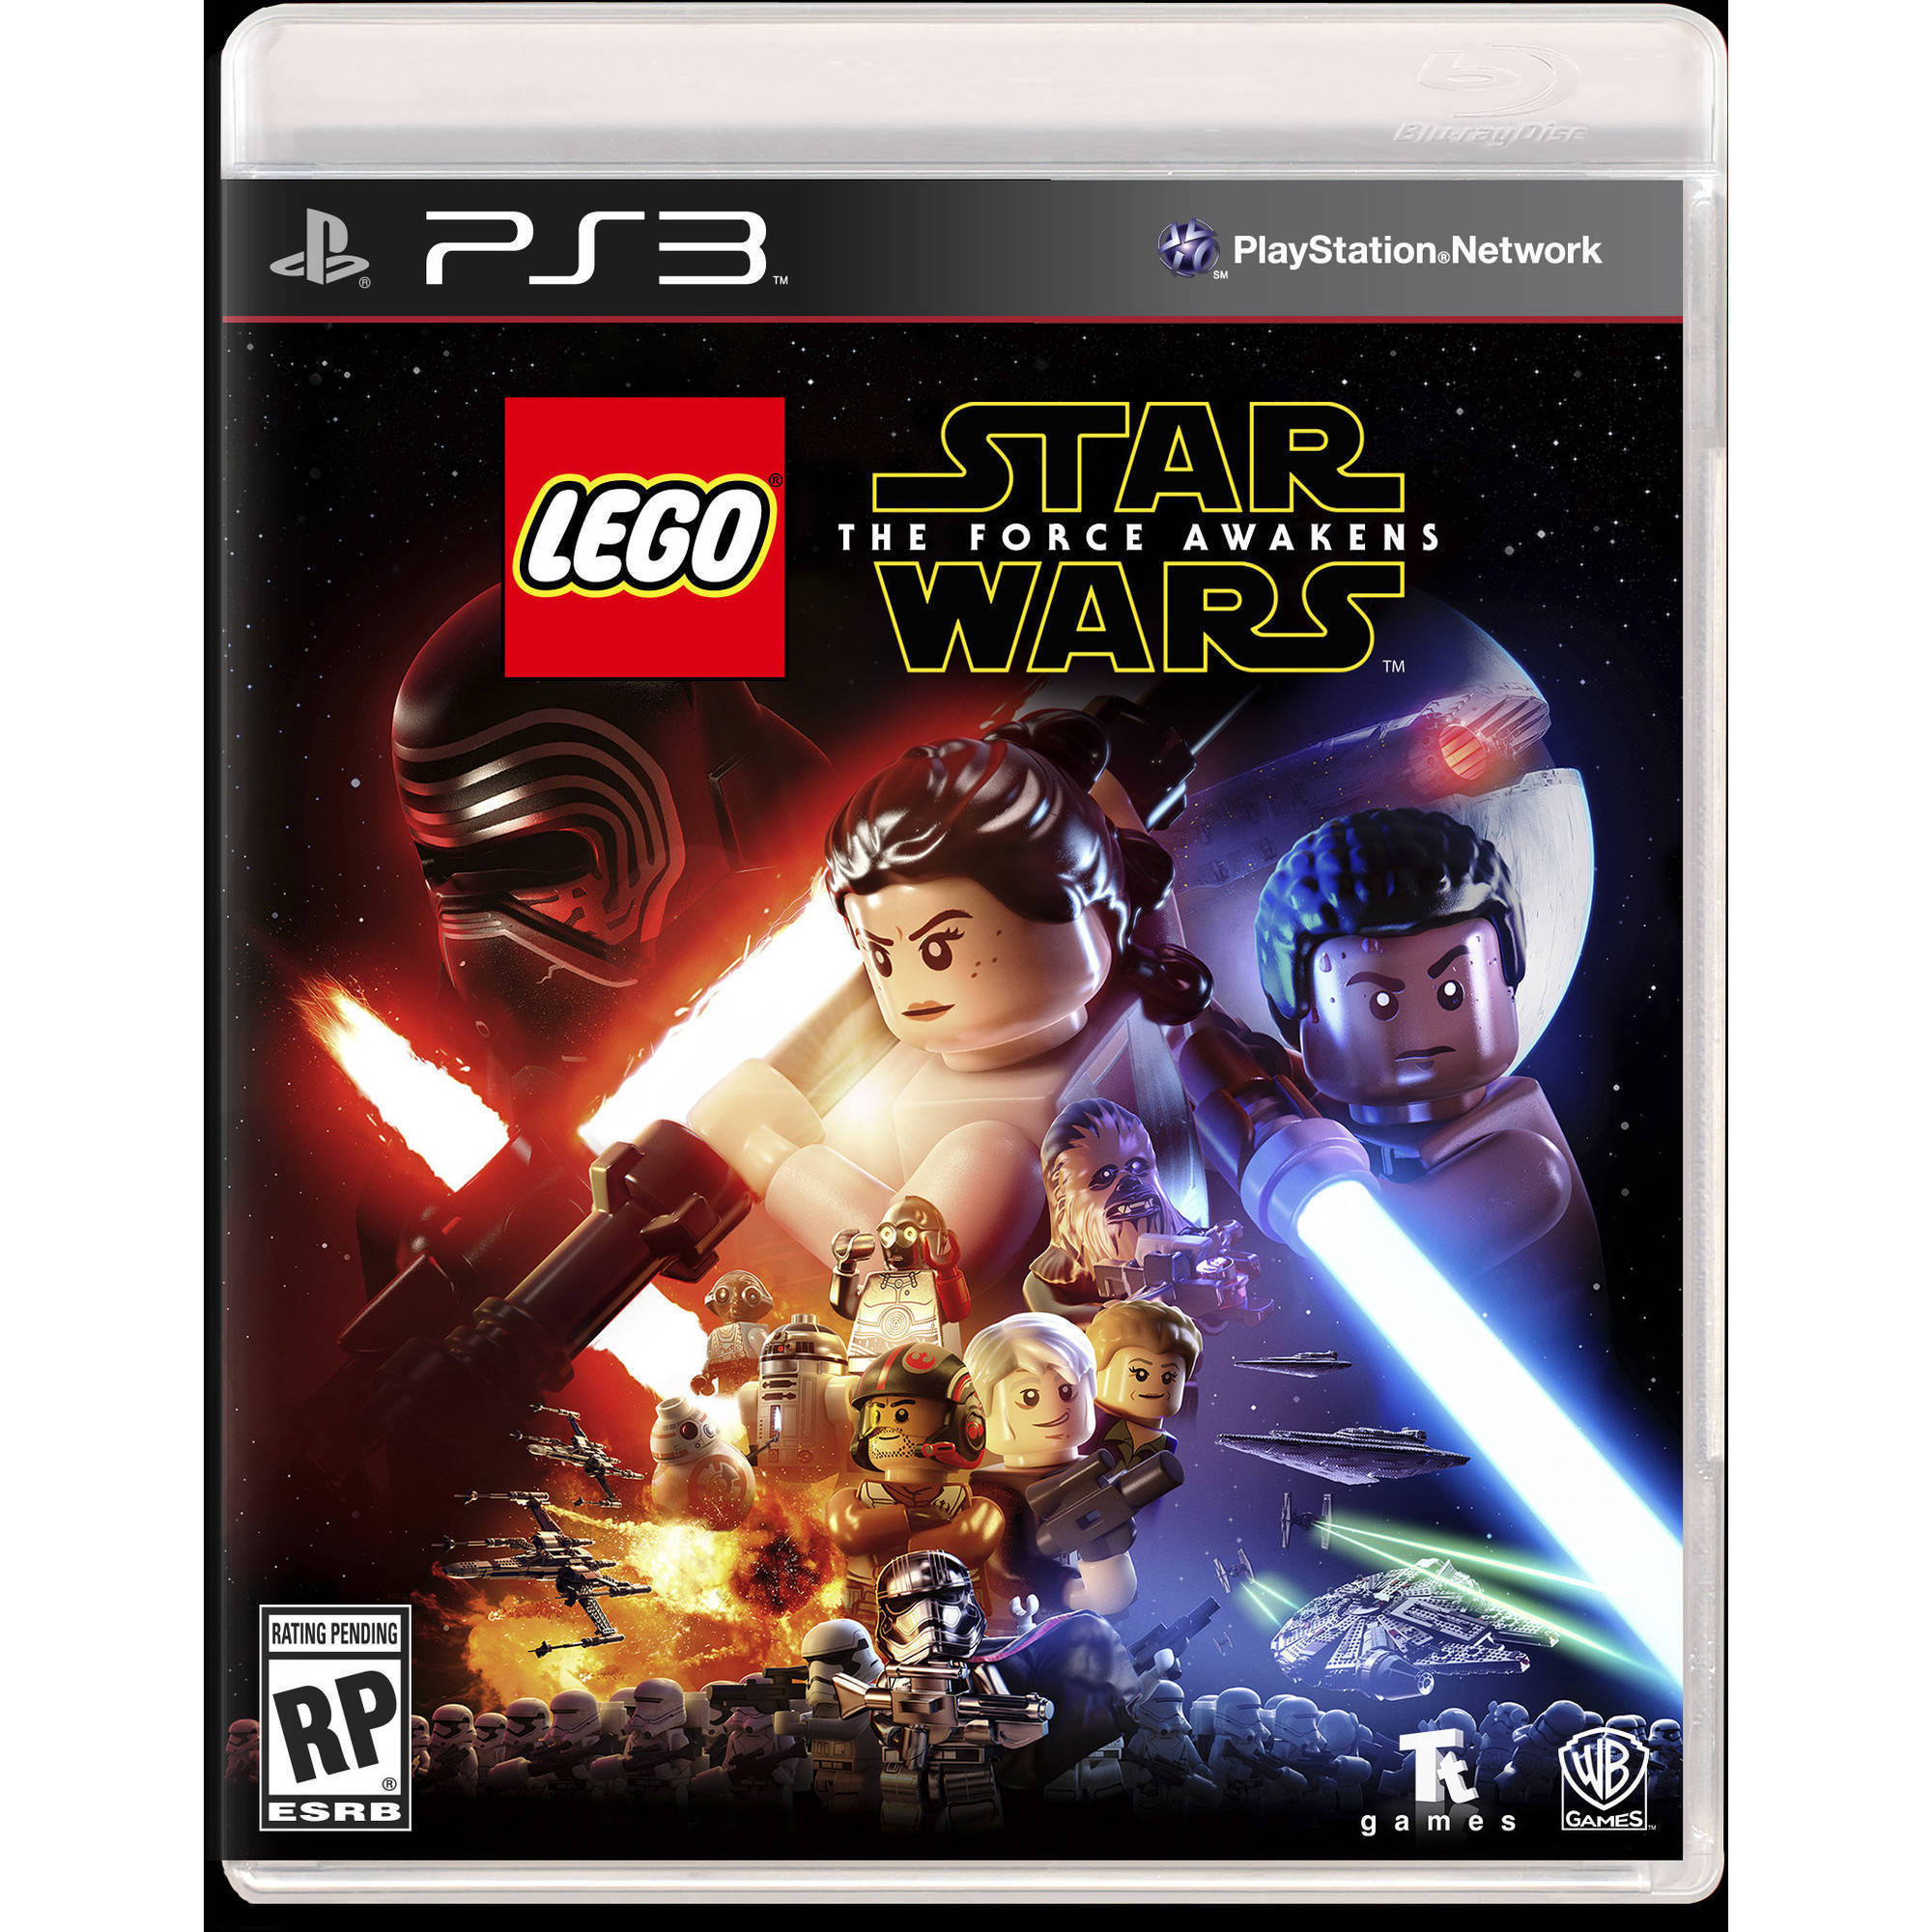 LEGO Star Wars Force Awakens - Walmart Exclusive (PS3)